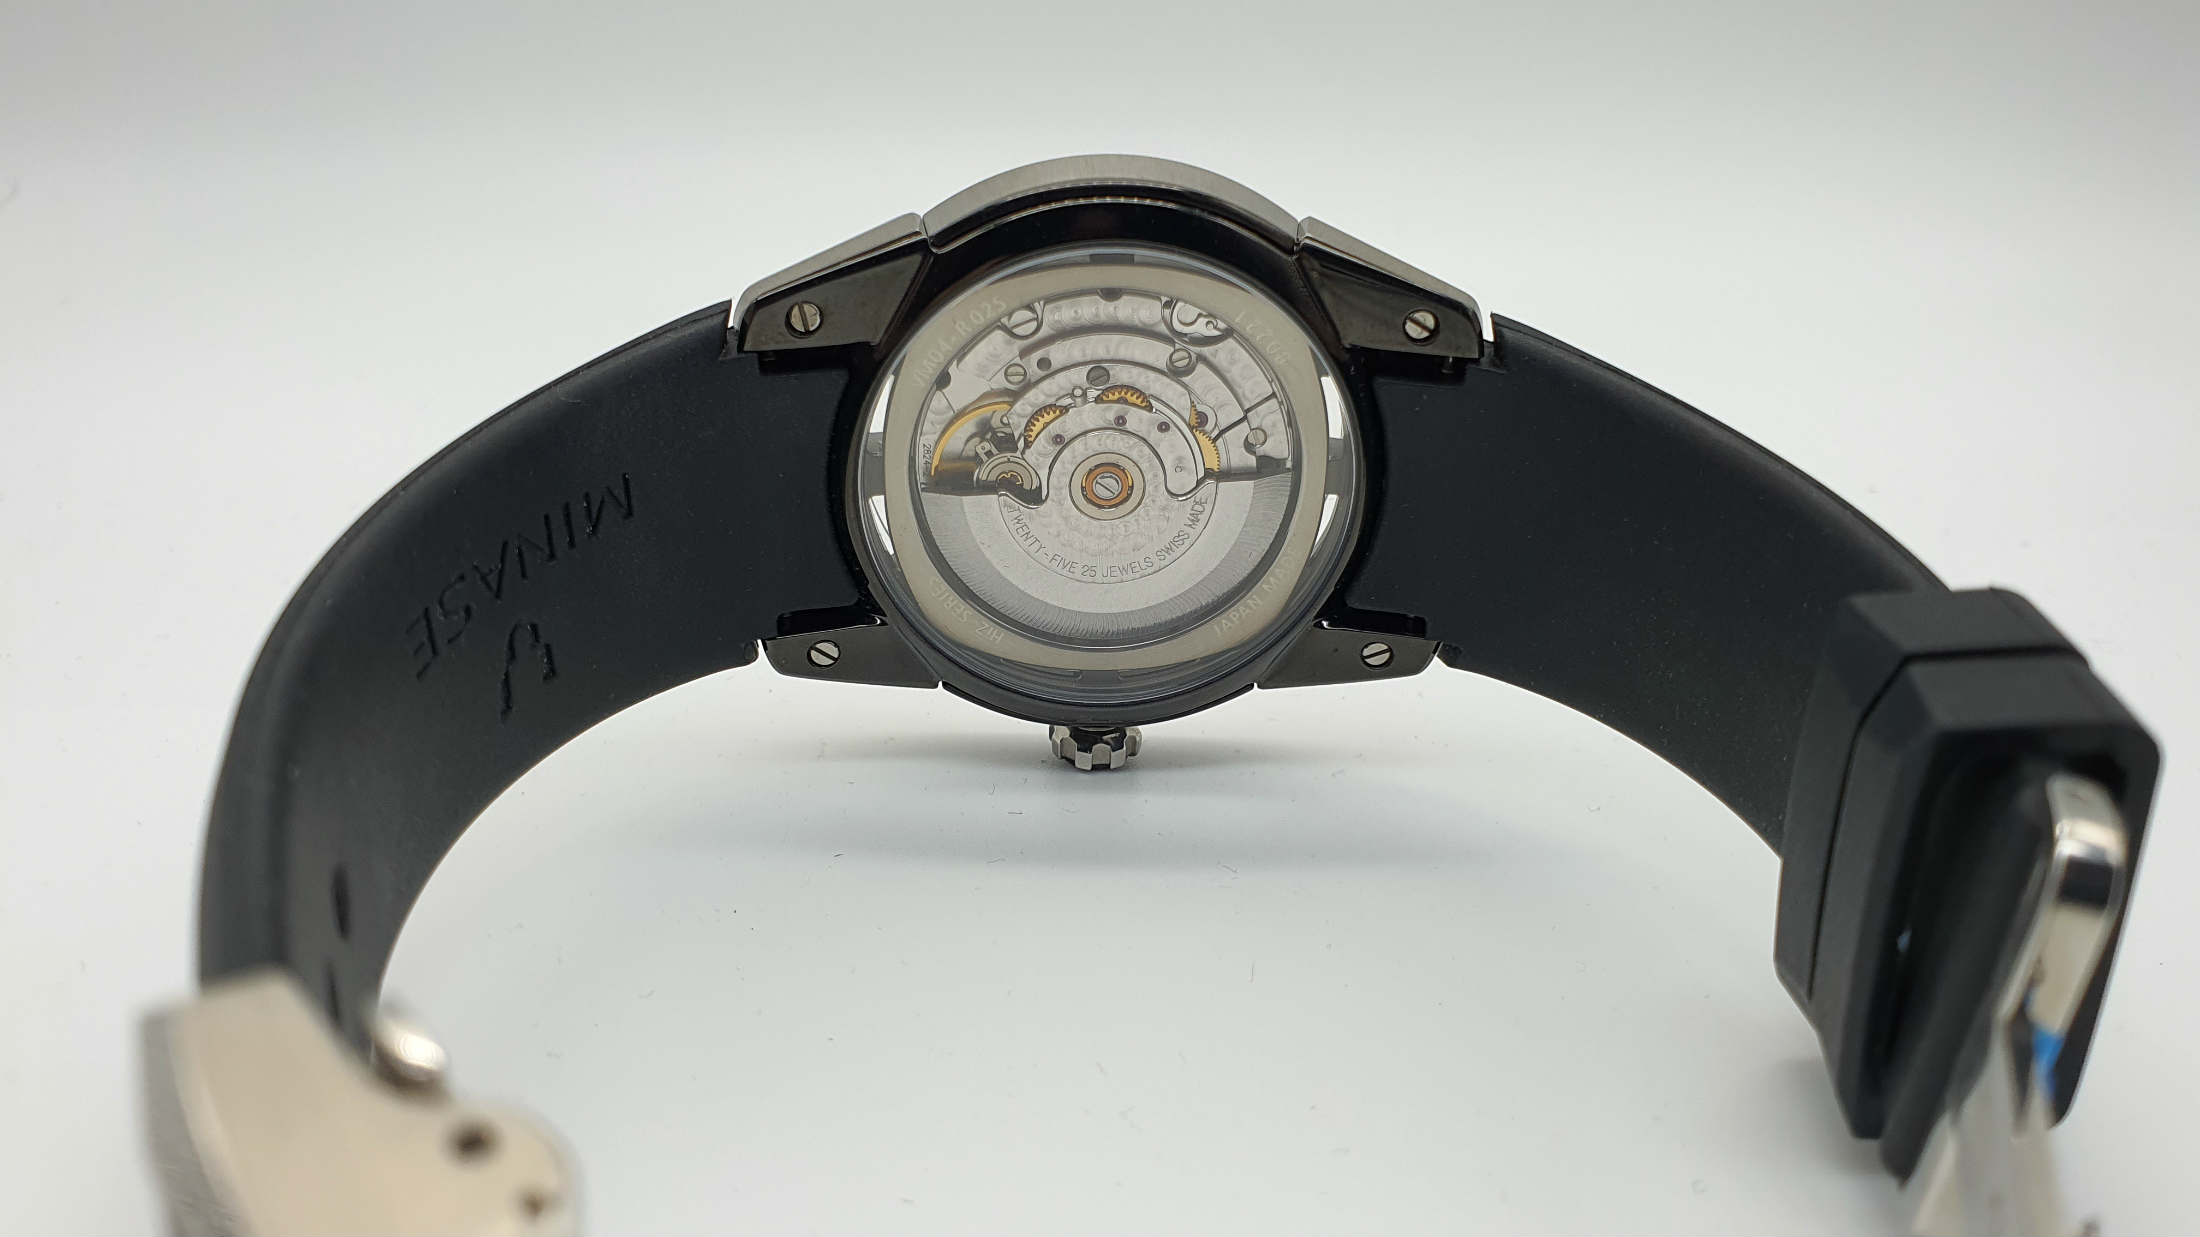 Divado watch by Japanese brand Minase